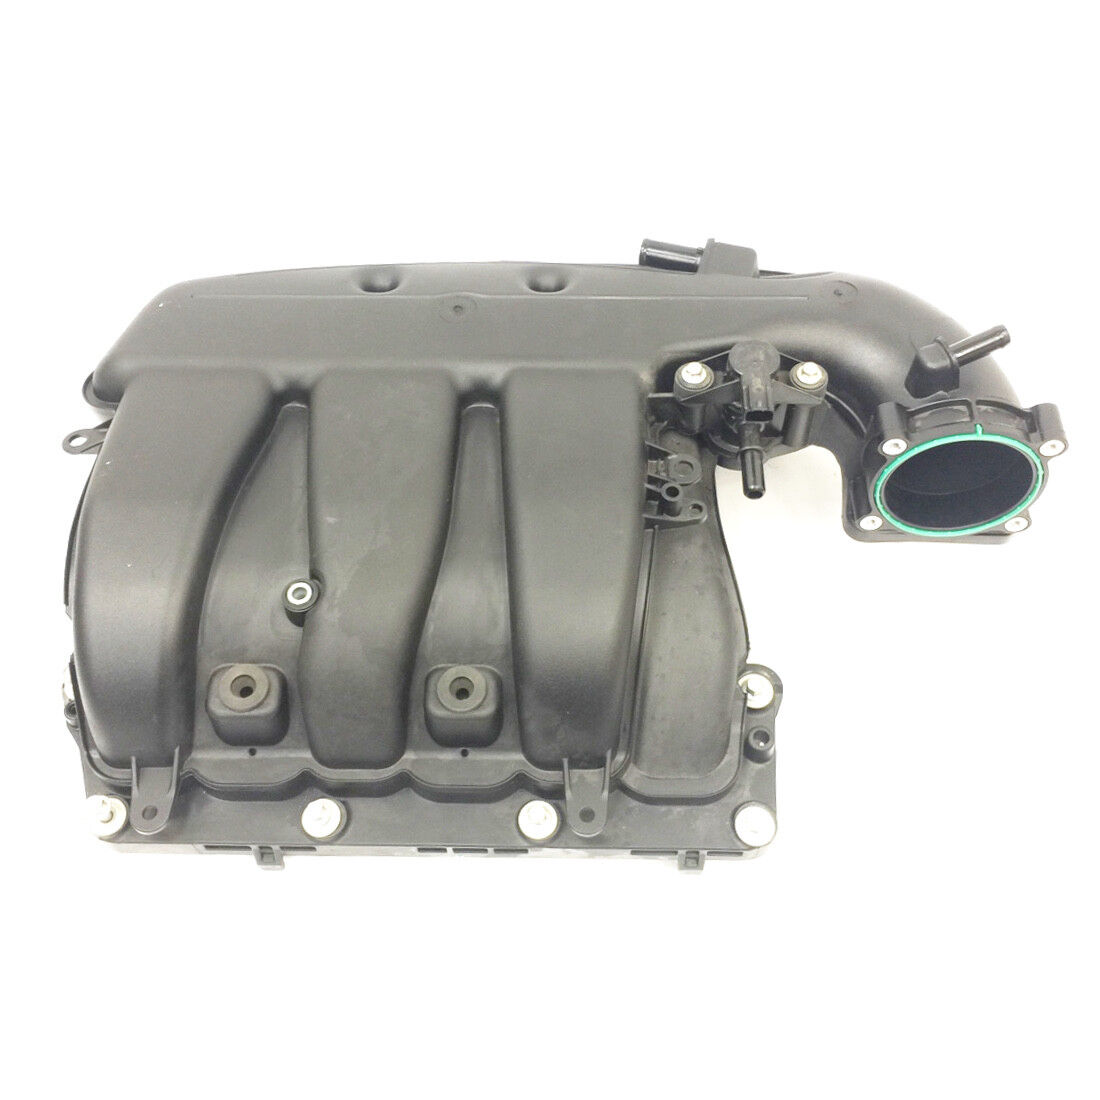 69 Lincoln Mark 3: Used Lincoln Intake Manifolds For Sale